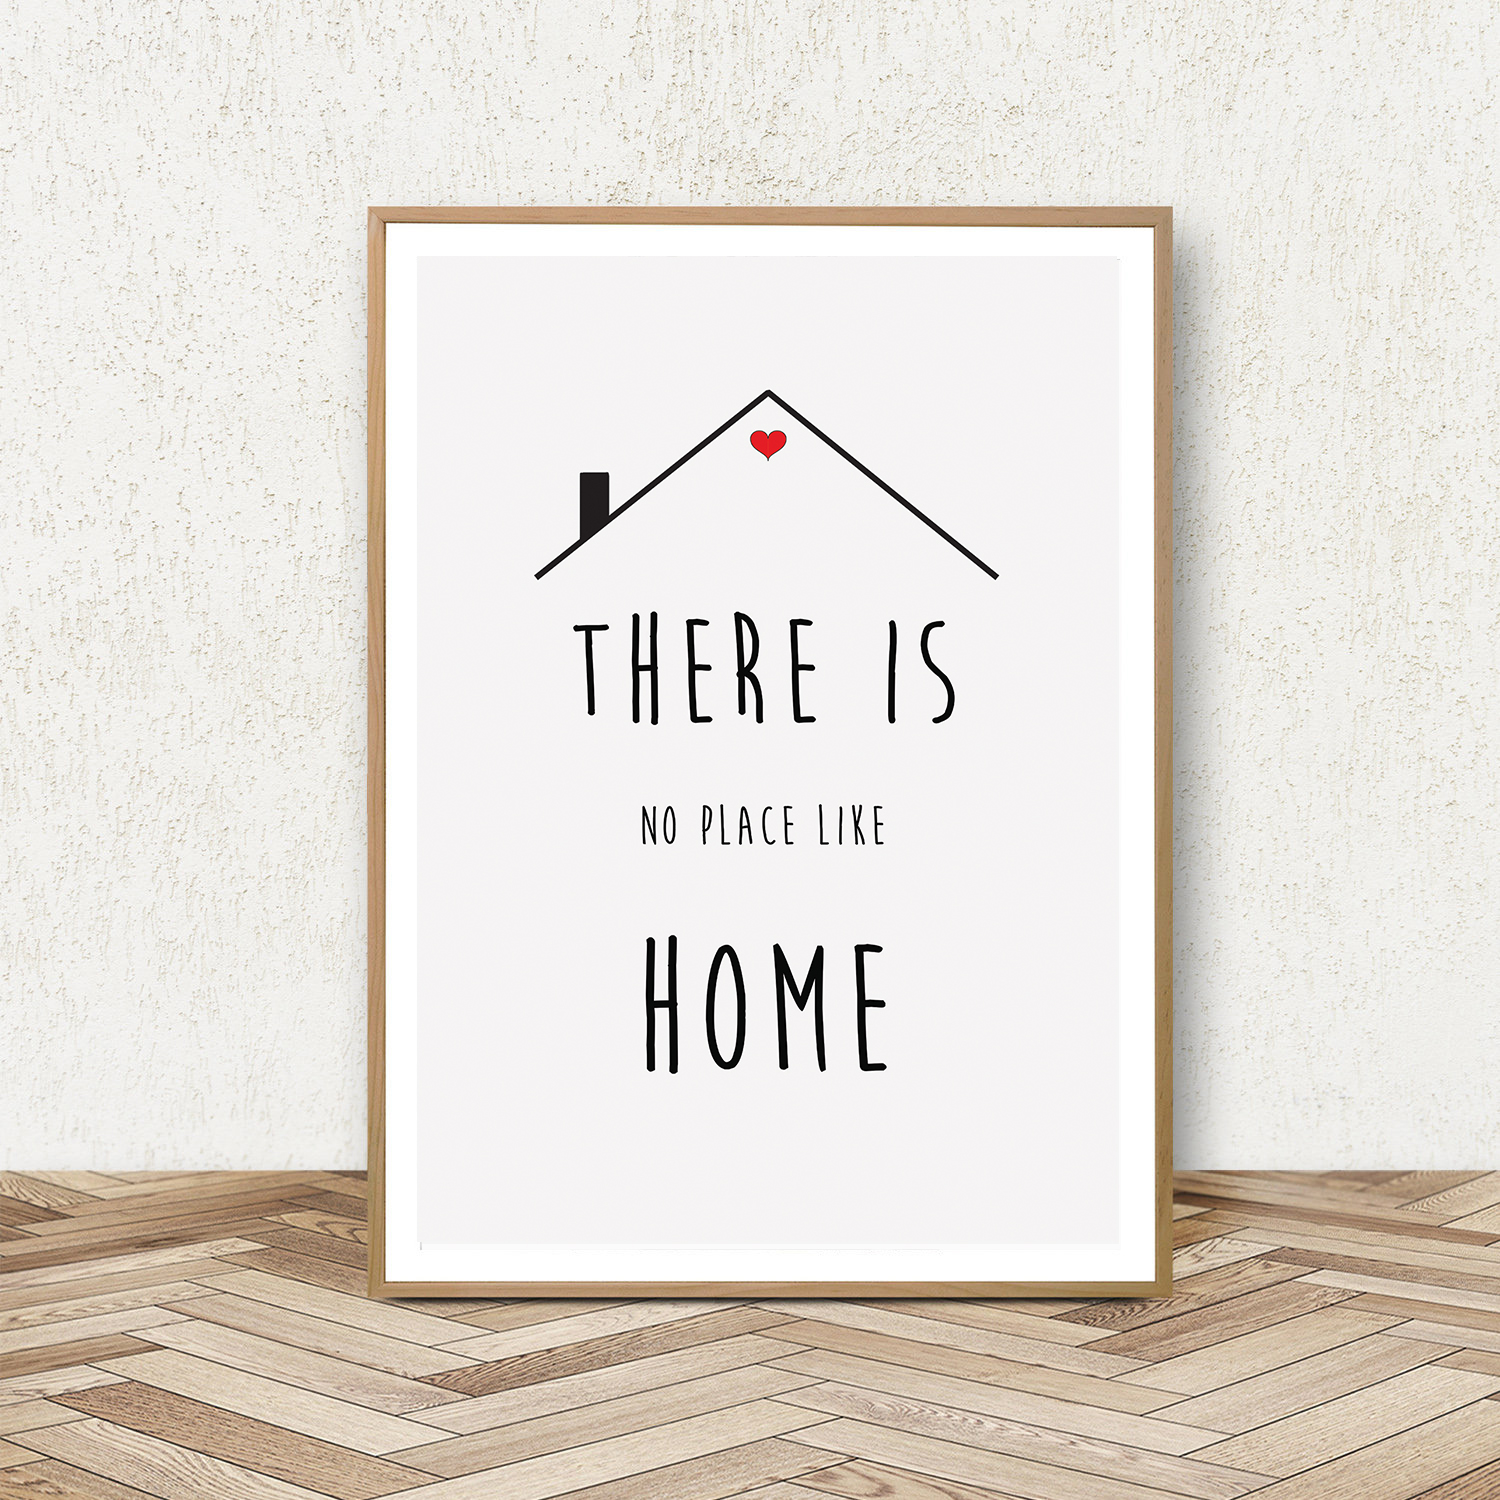 Minimalist Wall Art Quotes, Printable Home Quotes Poster example image 2